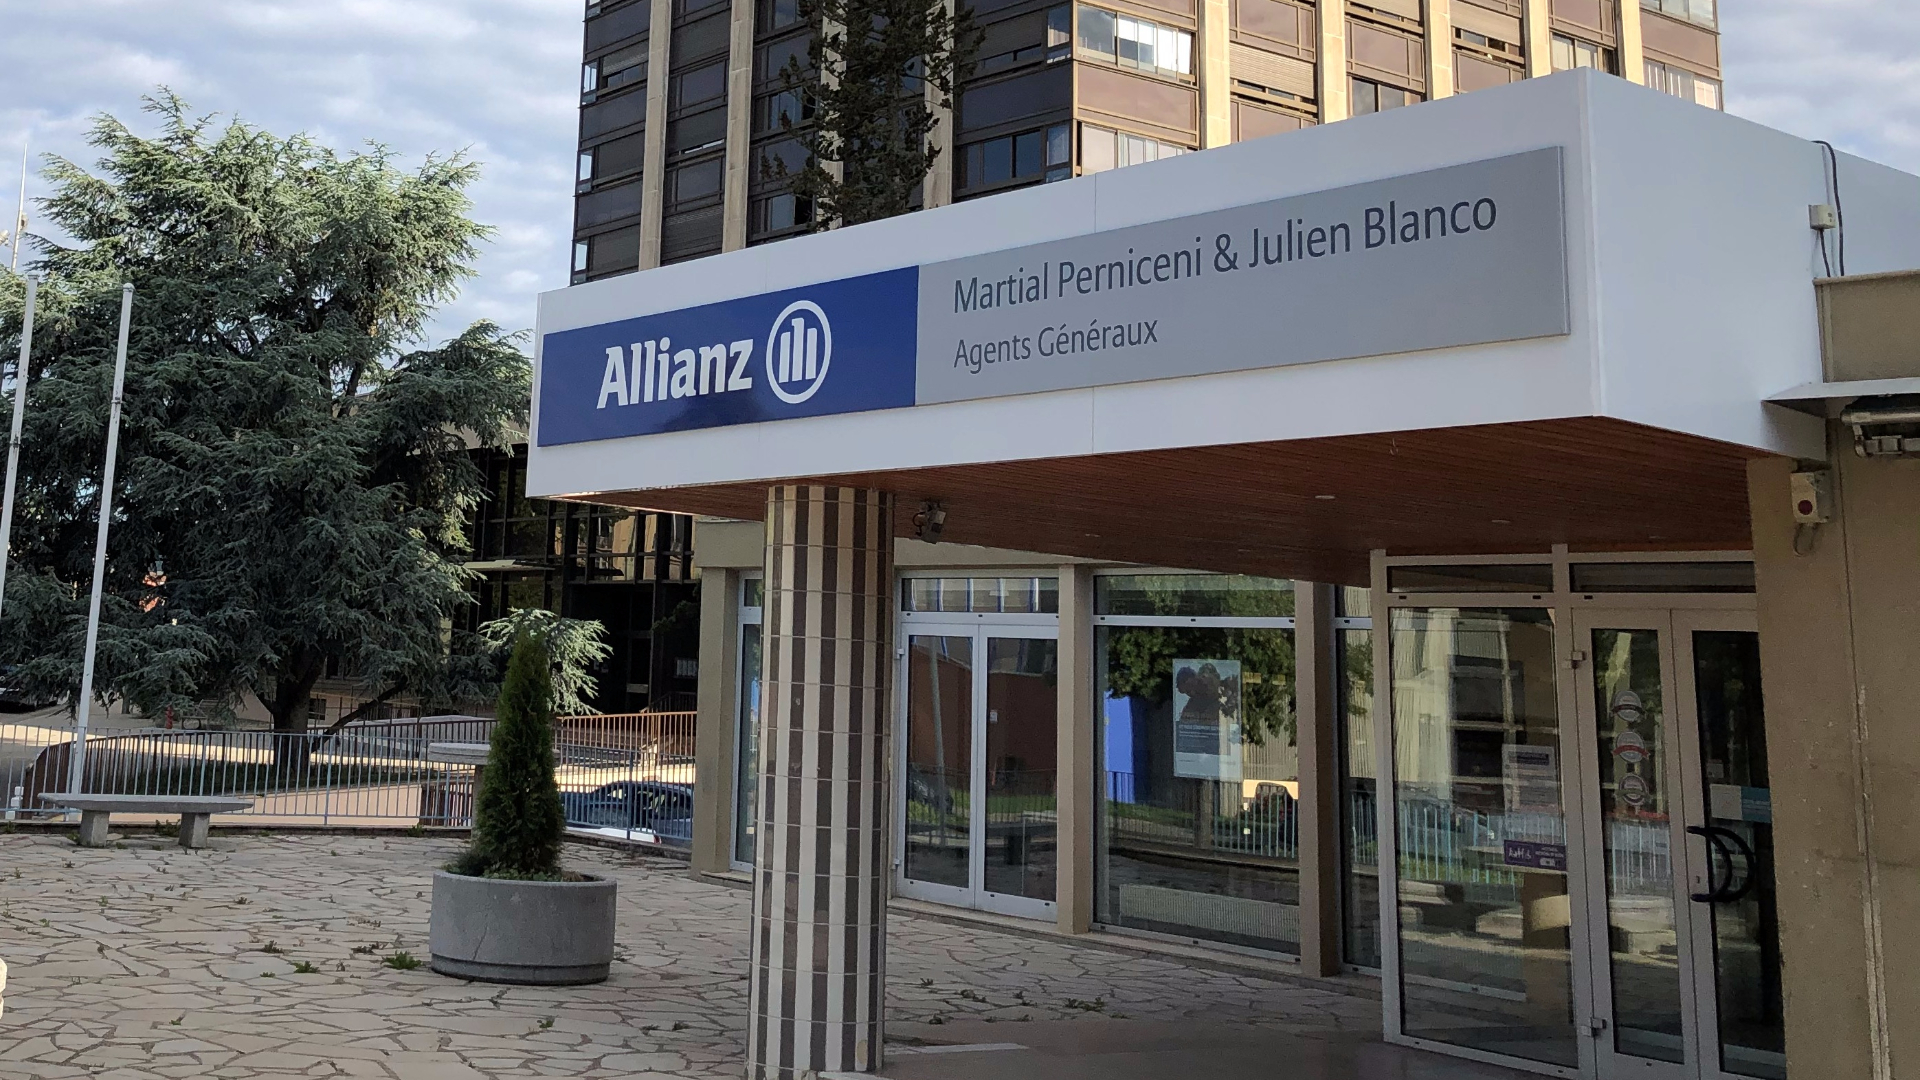 Allianz BELFORT - PERNICENI & BLANCO